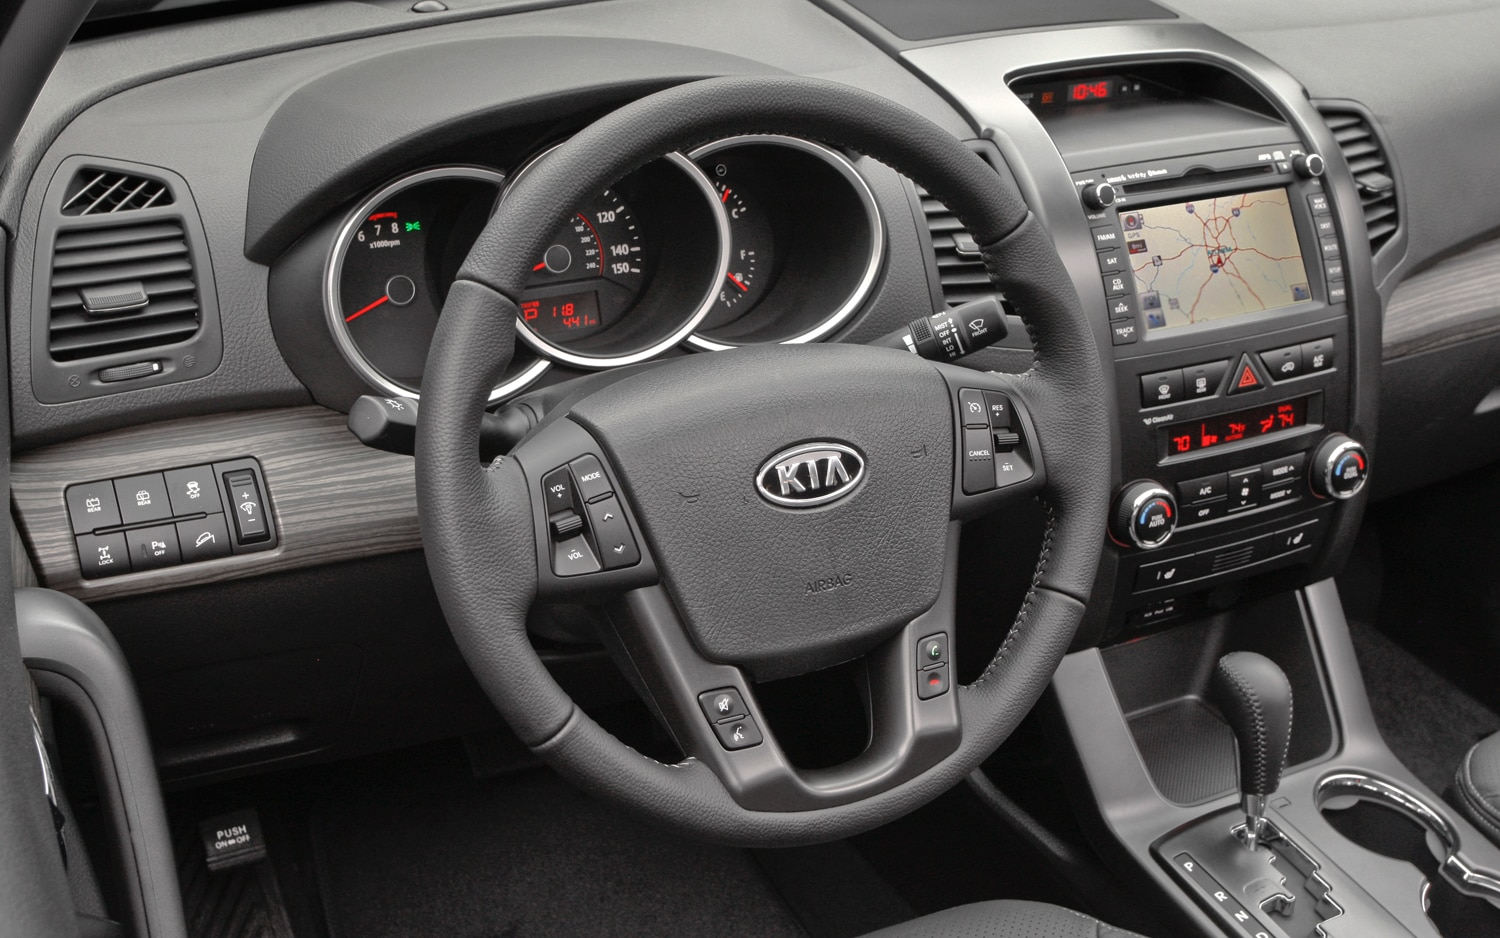 2012 Kia Sorento Steering Wheel